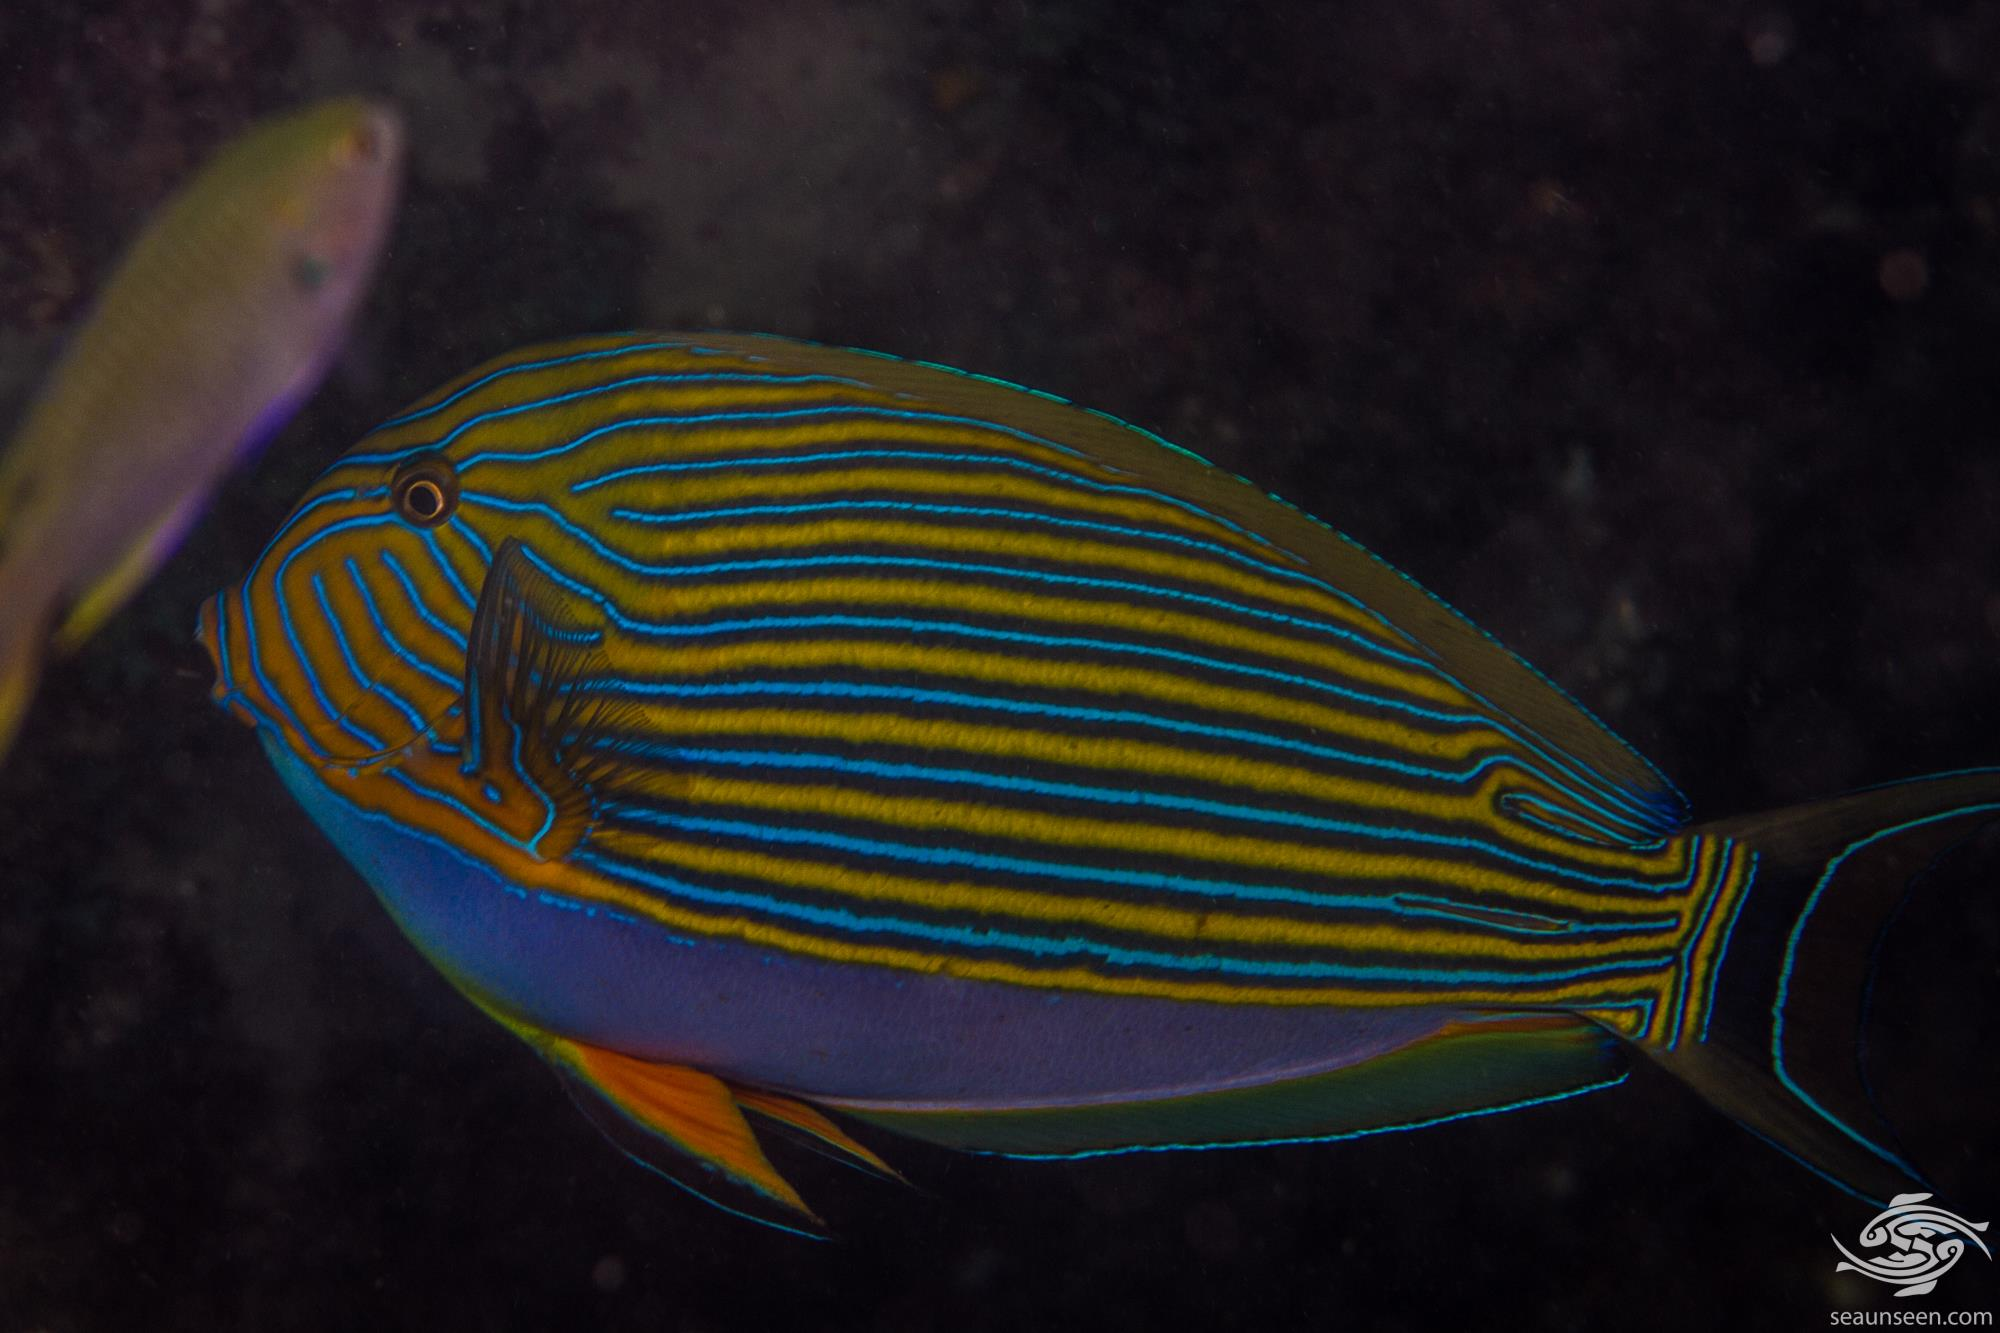 lined surgeonfish facts and photographs seaunseen